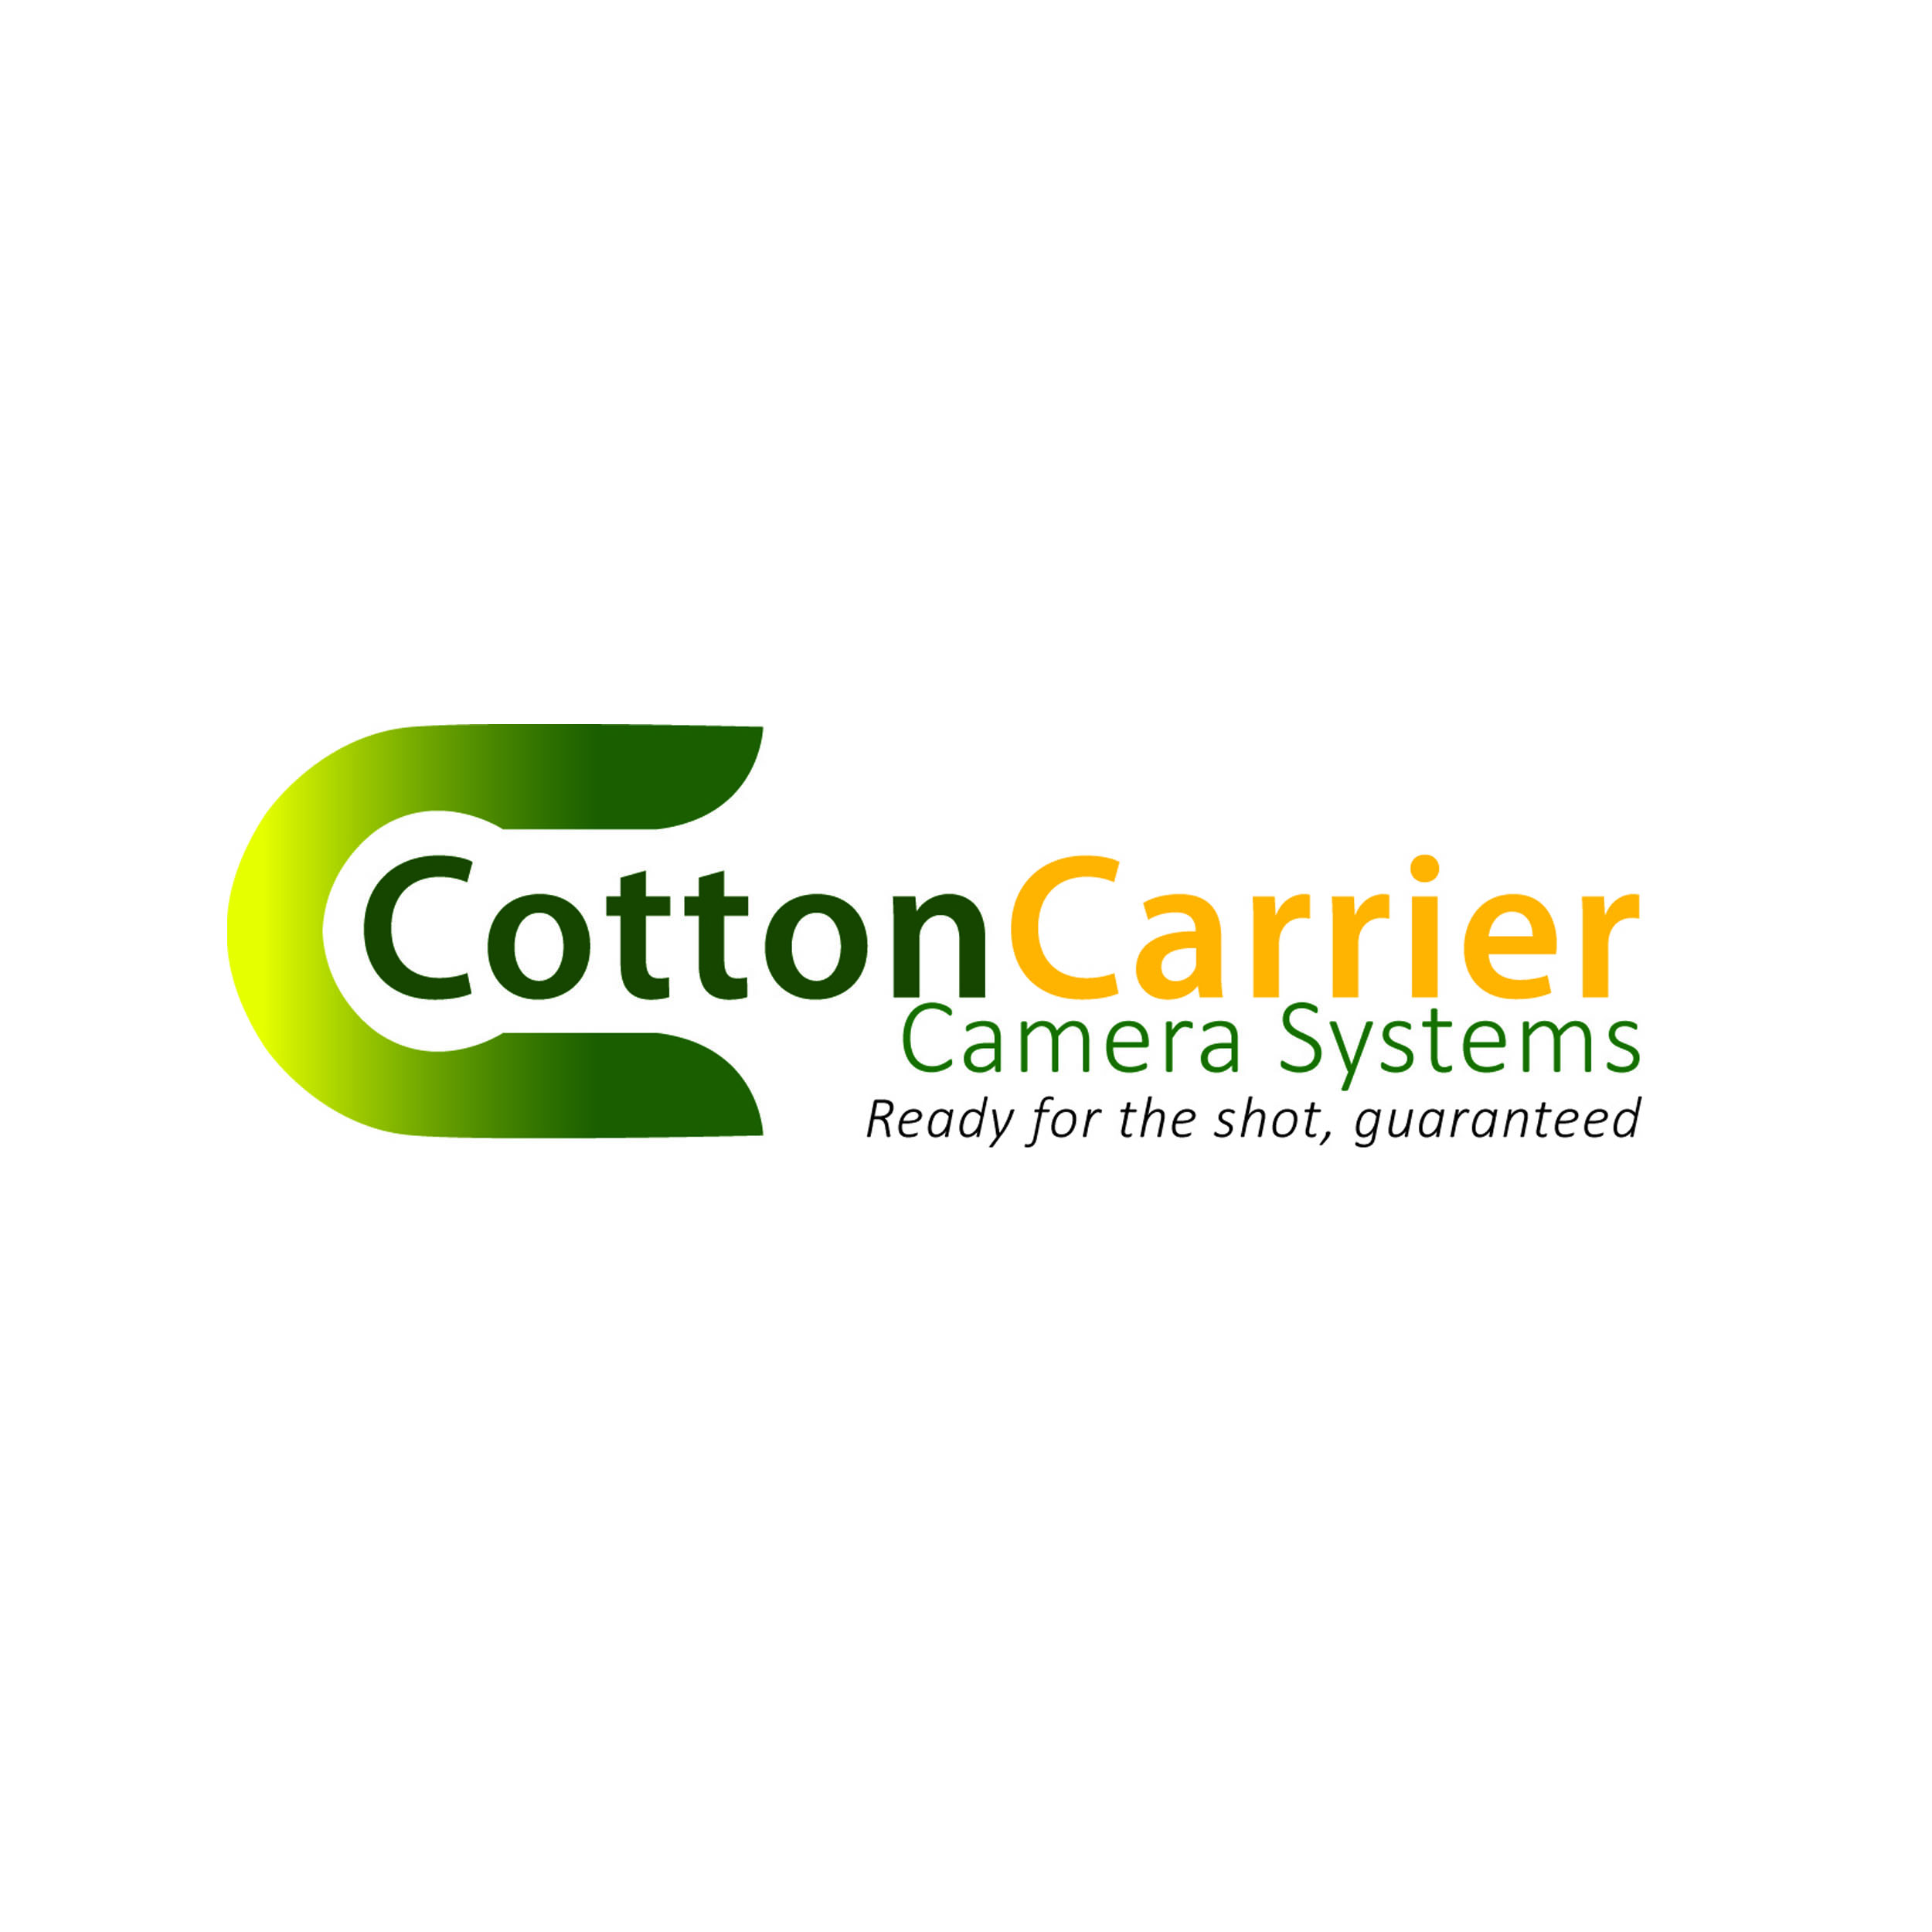 Logo Design by Private User - Entry No. 5 in the Logo Design Contest Cotton Carrier Camera Systems Logo Design.